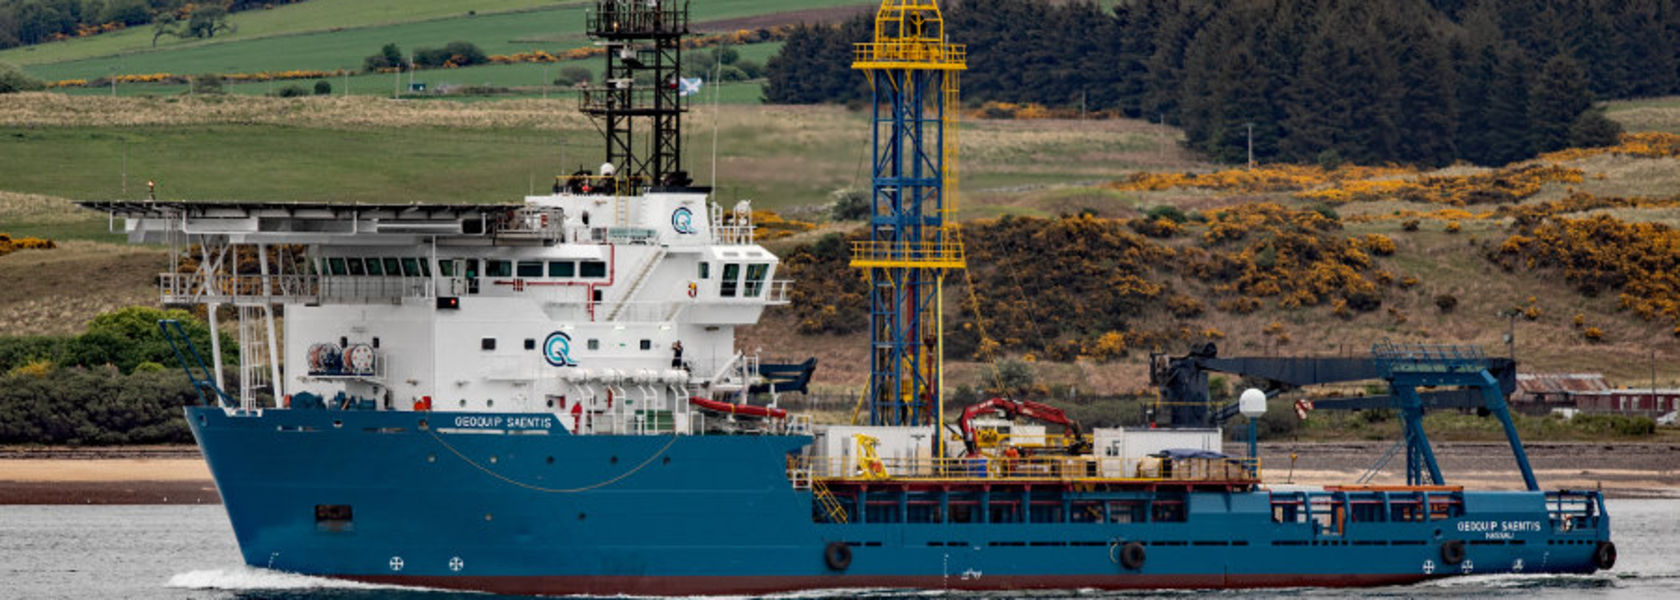 Geoquip Saentis sails for maiden job